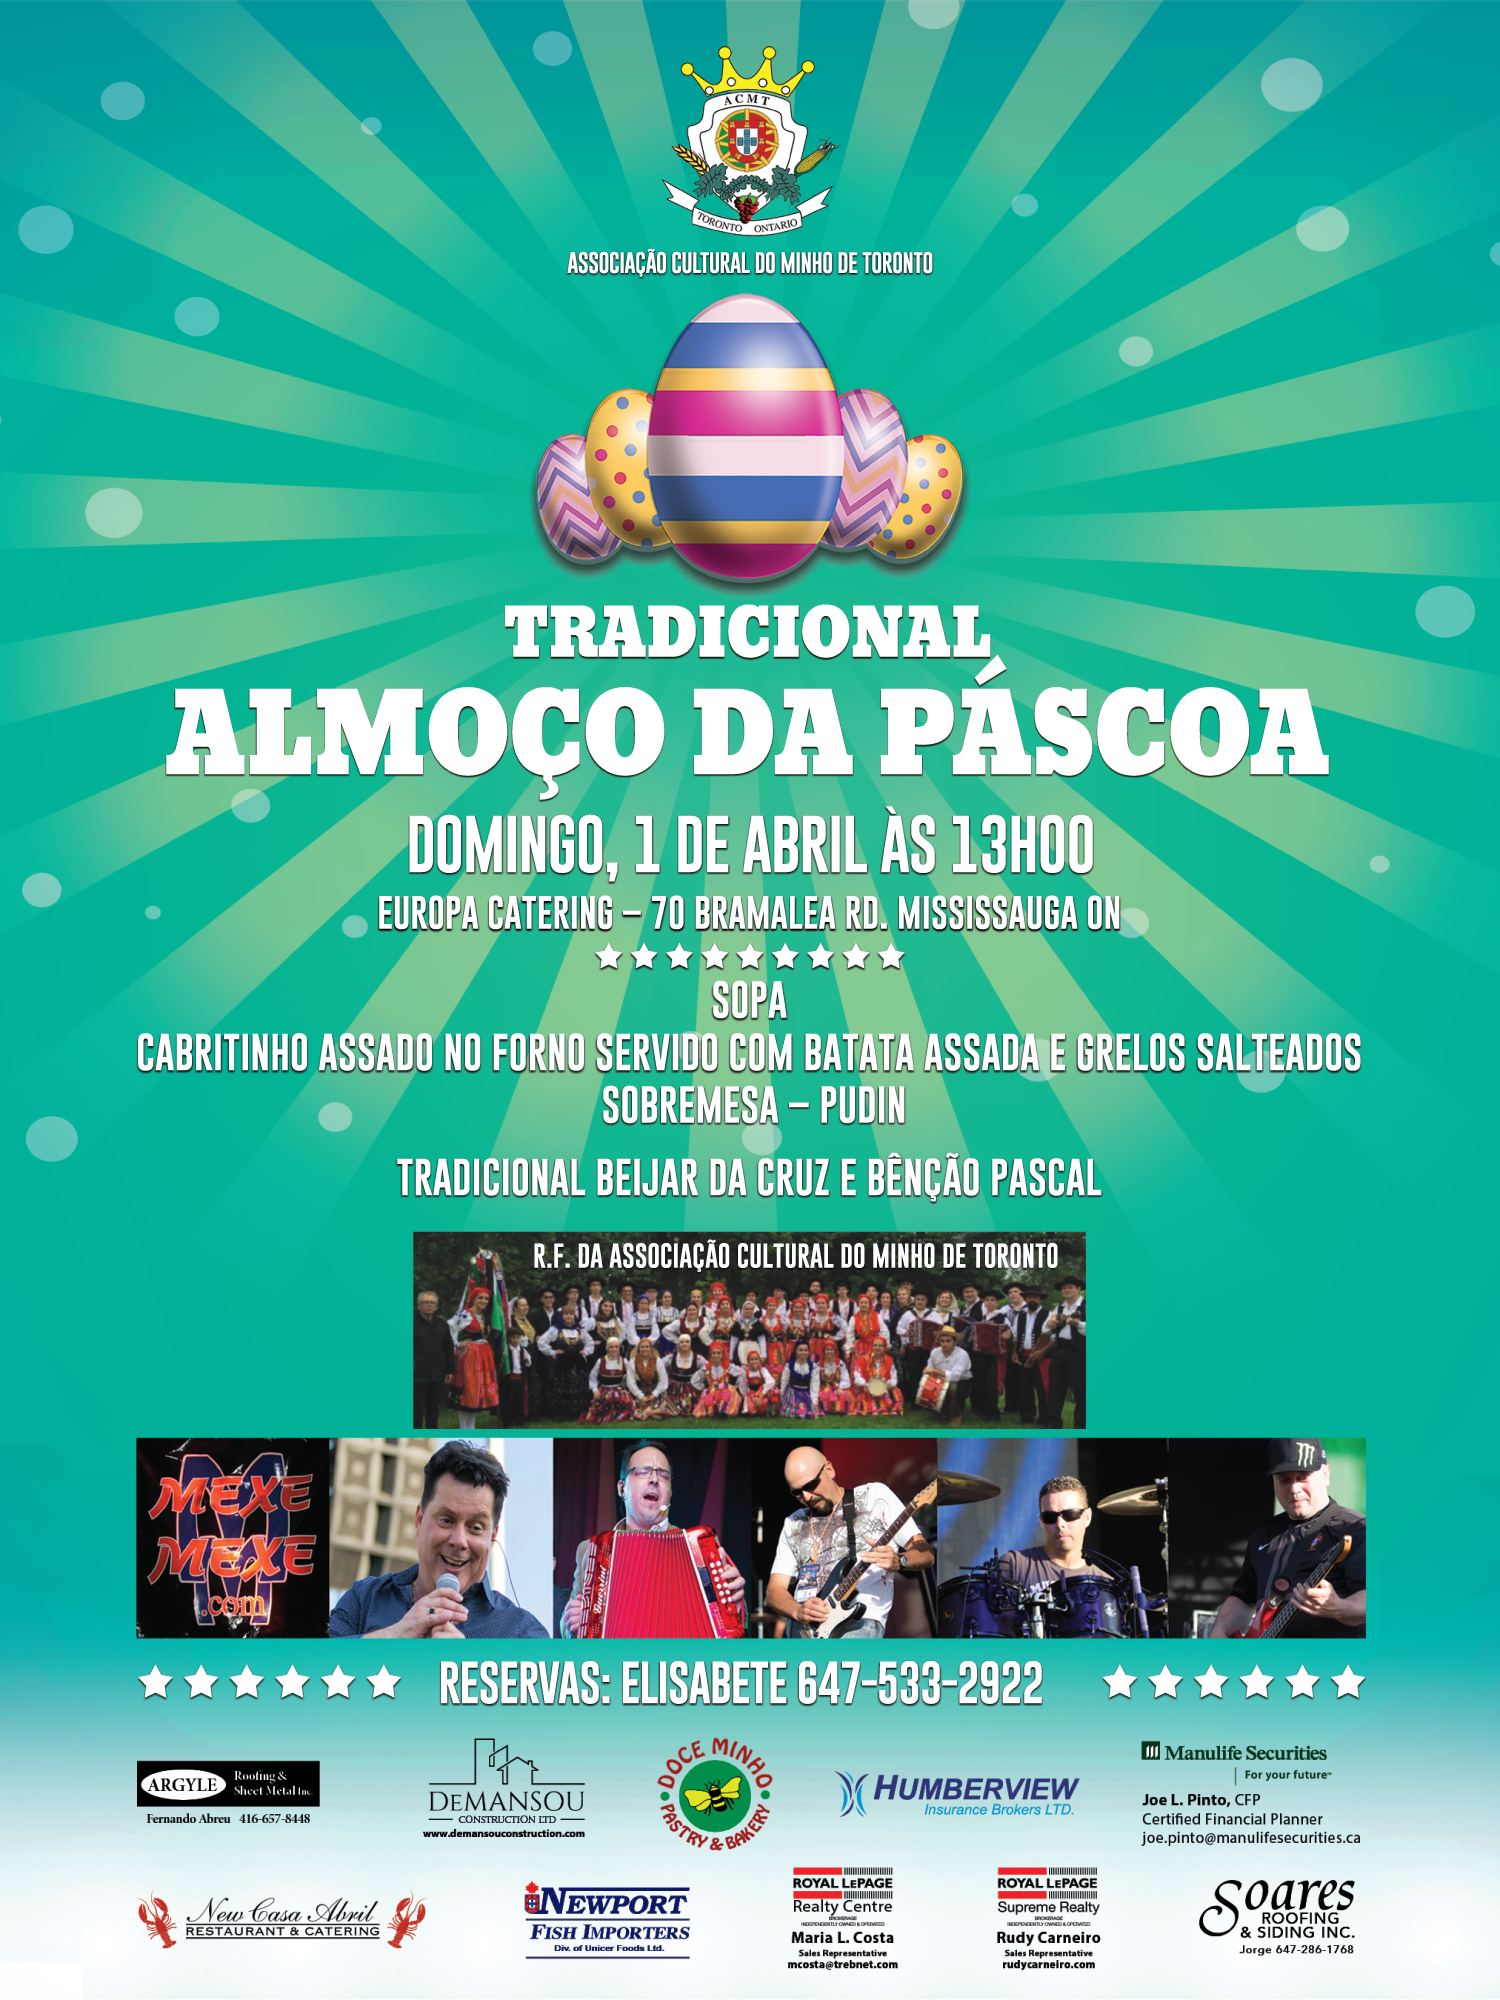 ACMT Pascoa poster